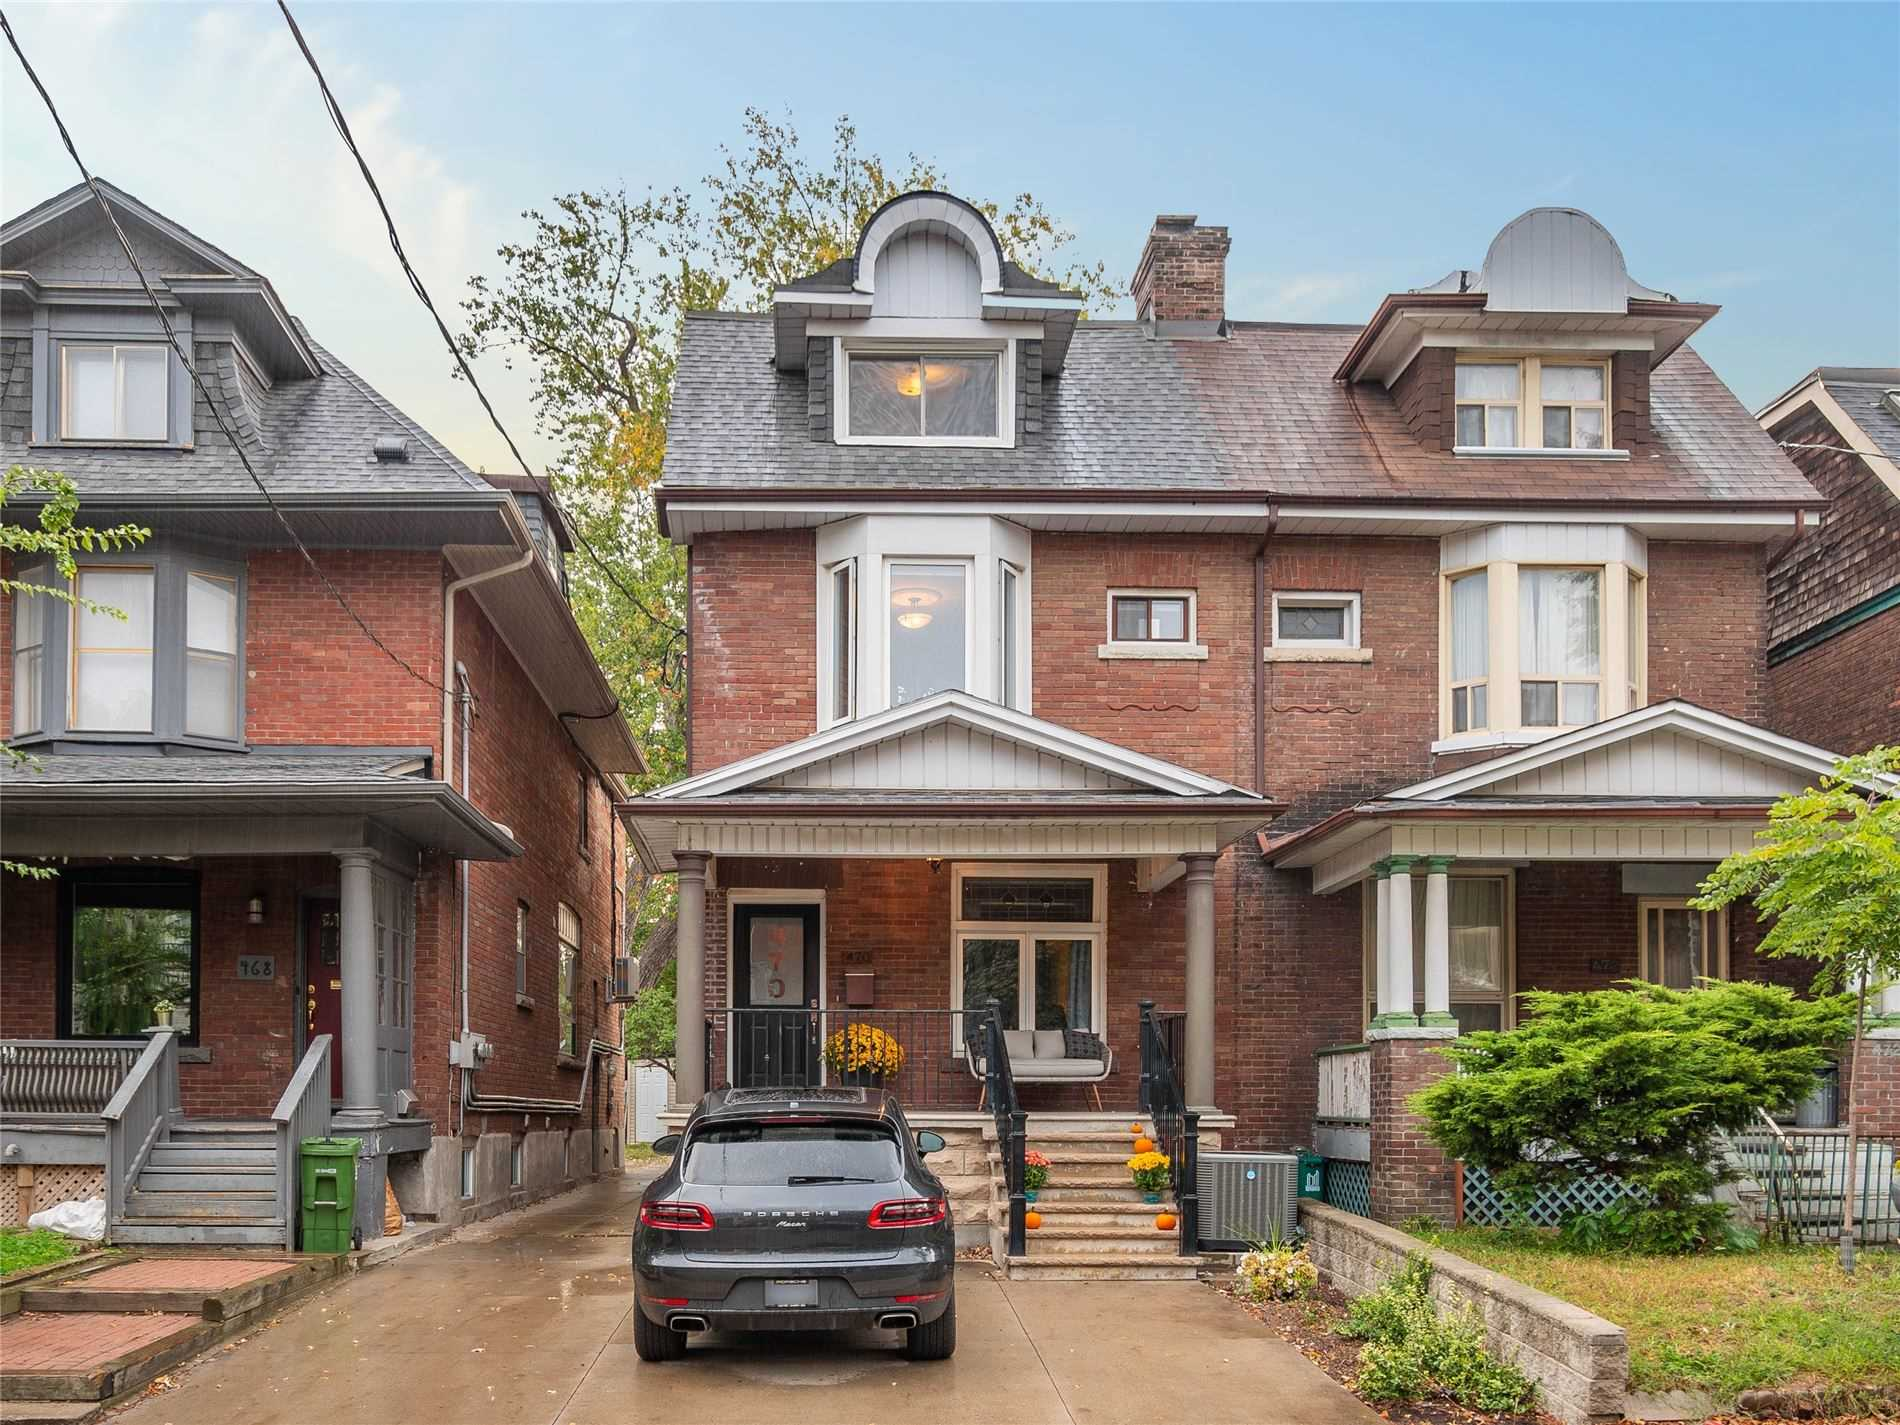 470 Markham St, Toronto, Ontario M6G2L3, 4 Bedrooms Bedrooms, 8 Rooms Rooms,3 BathroomsBathrooms,Semi-detached,For Sale,Markham,C4964587